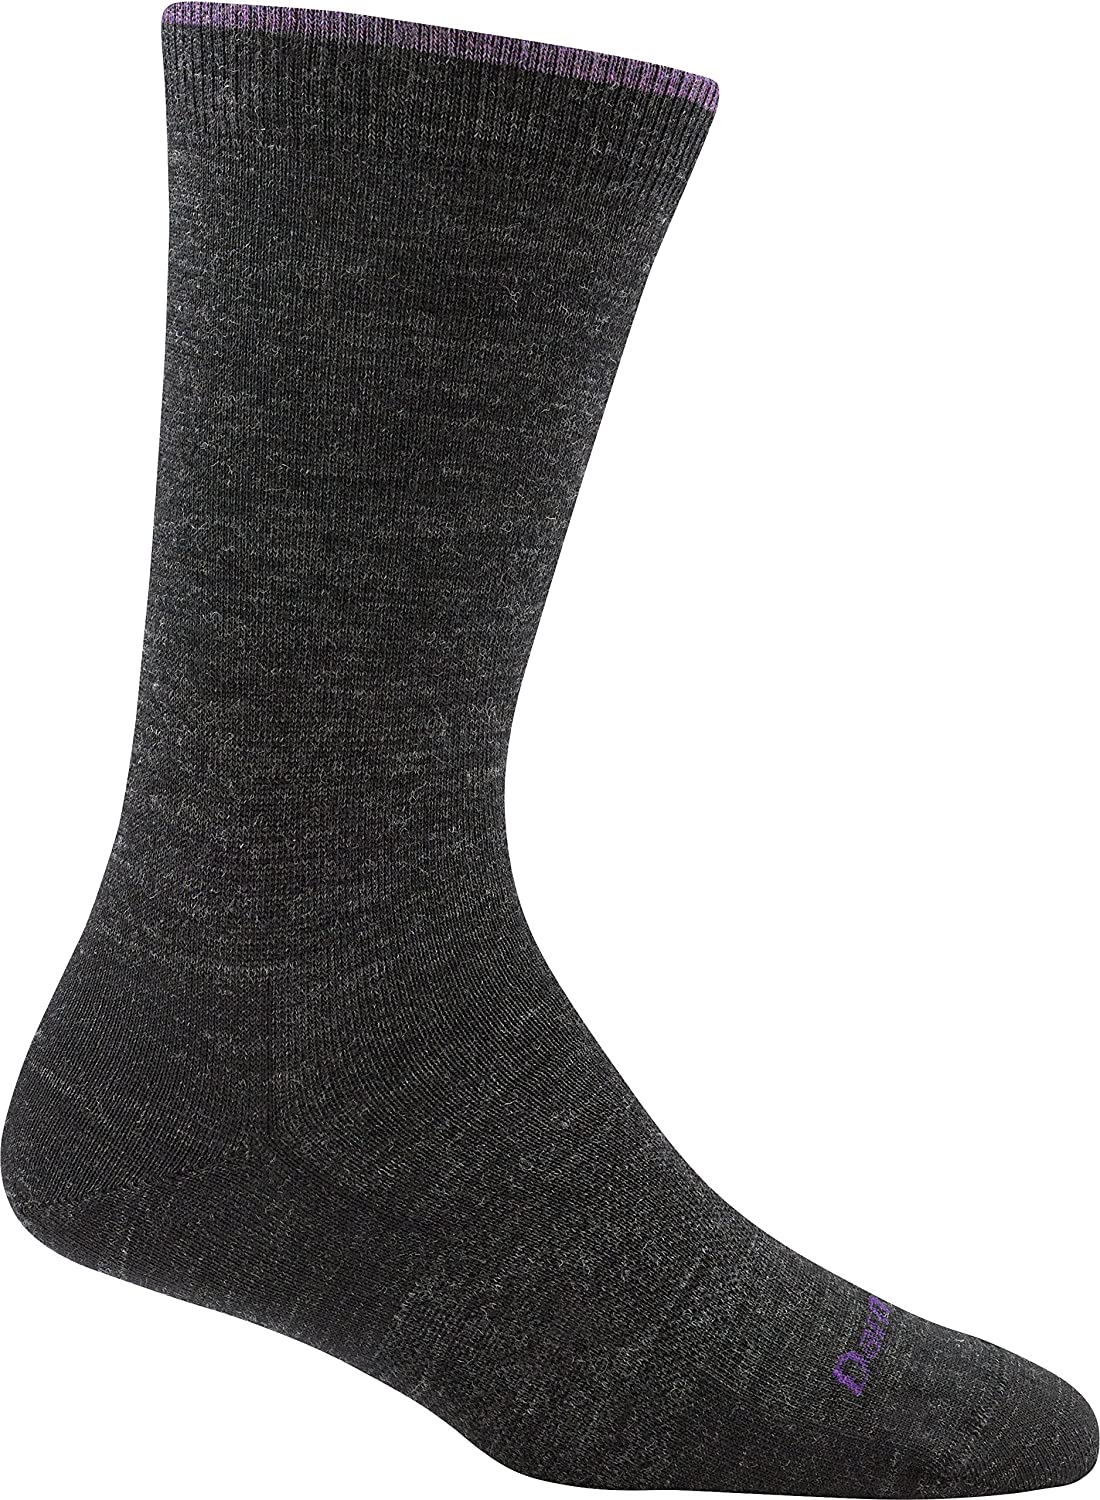 Darn Tough Women's Merino Wool Solid Basic Crew Light Socks, Charcoal, Small  6 Pack